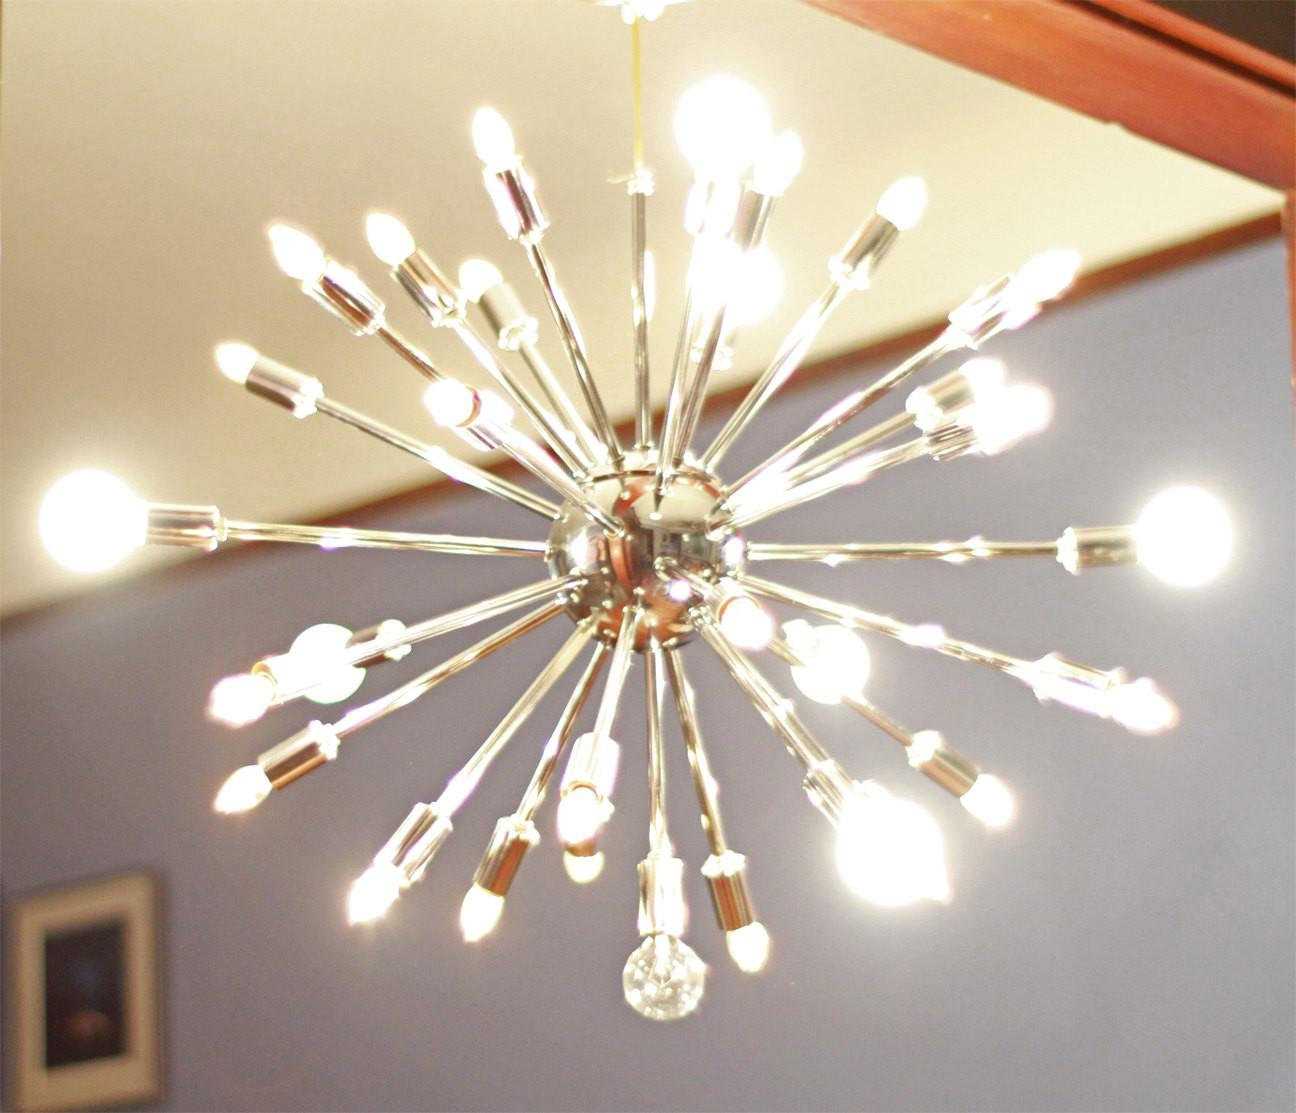 Mid Century Modern Lighting Offers Stylish Whimsy